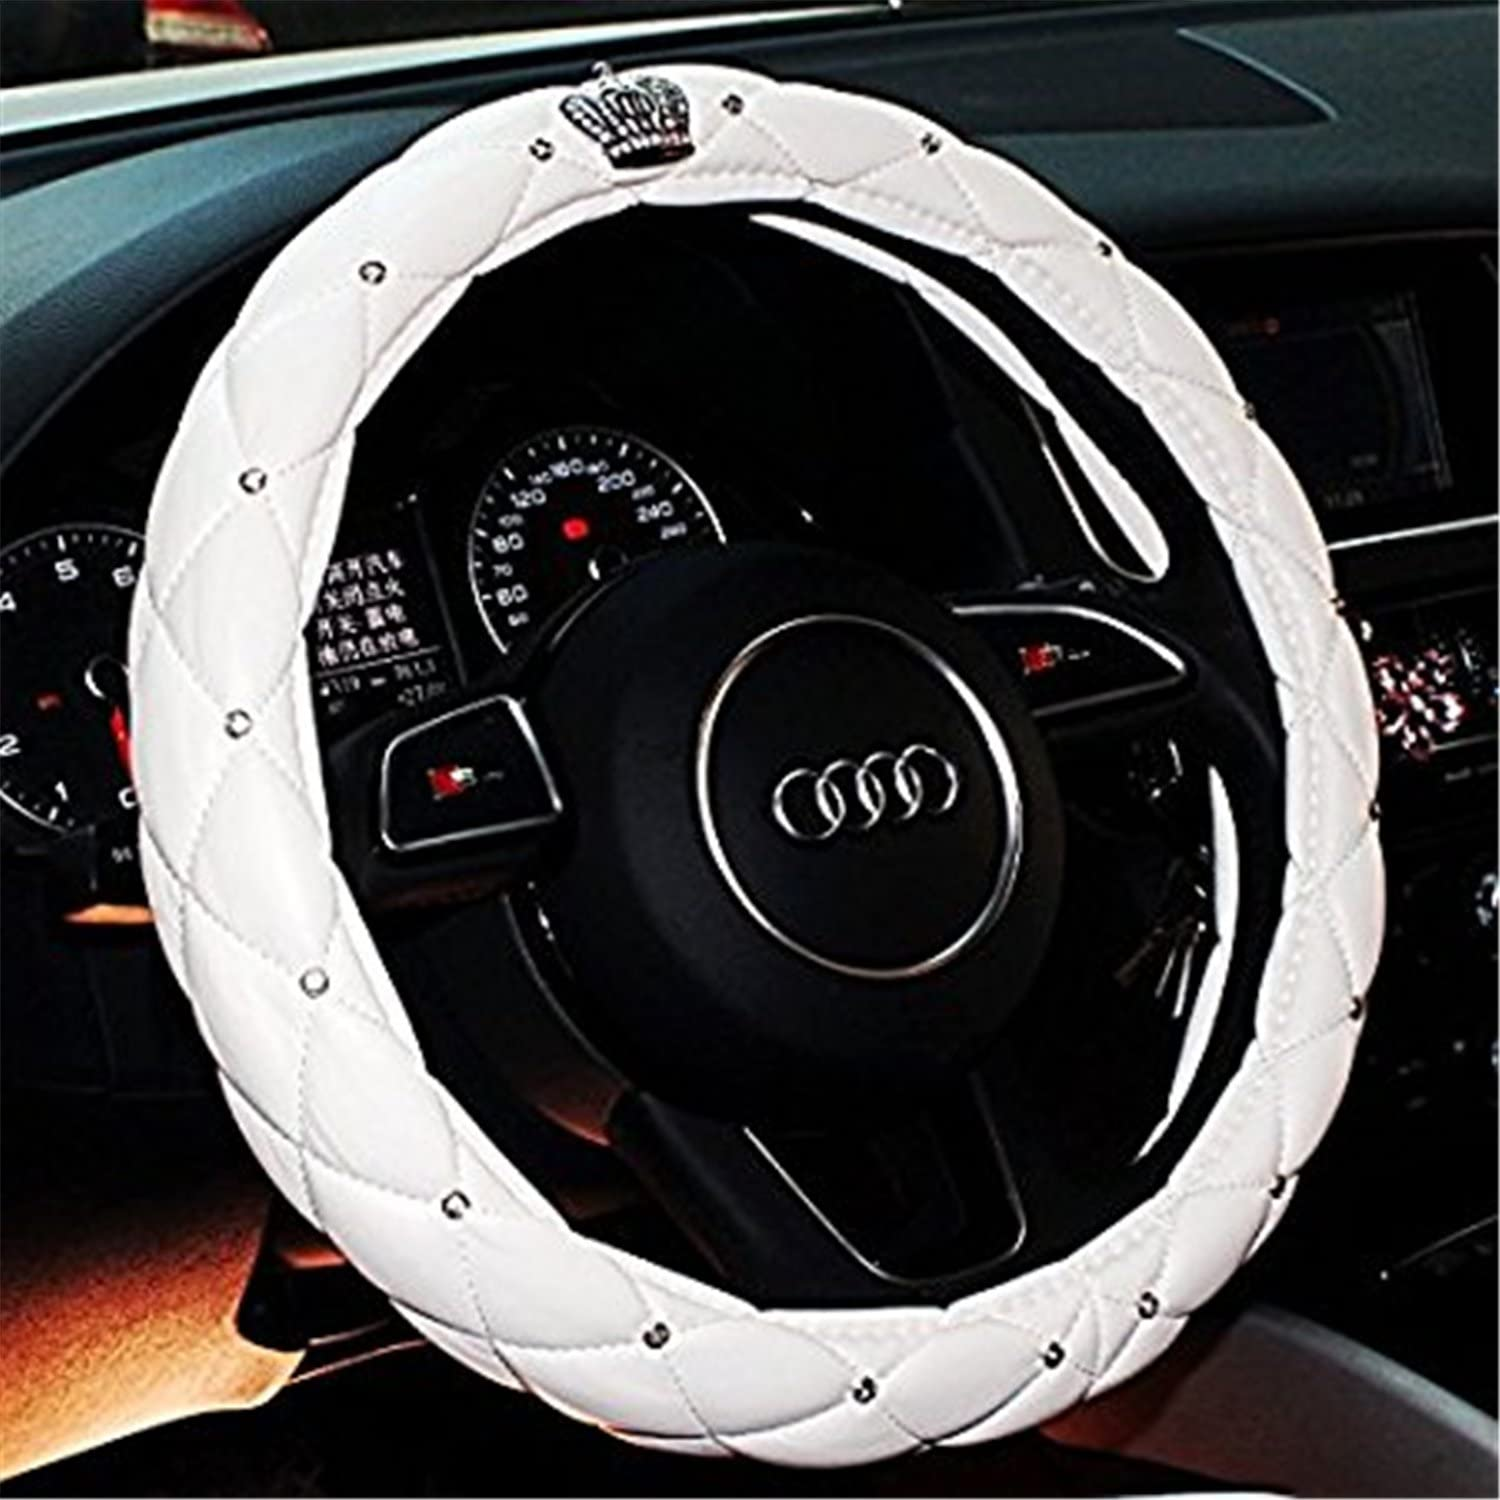 Mai Poetry 38cm 15 Car Steering Wheel Cover Car Truck Skidproof Soft PU Leather with Rhinestone Red